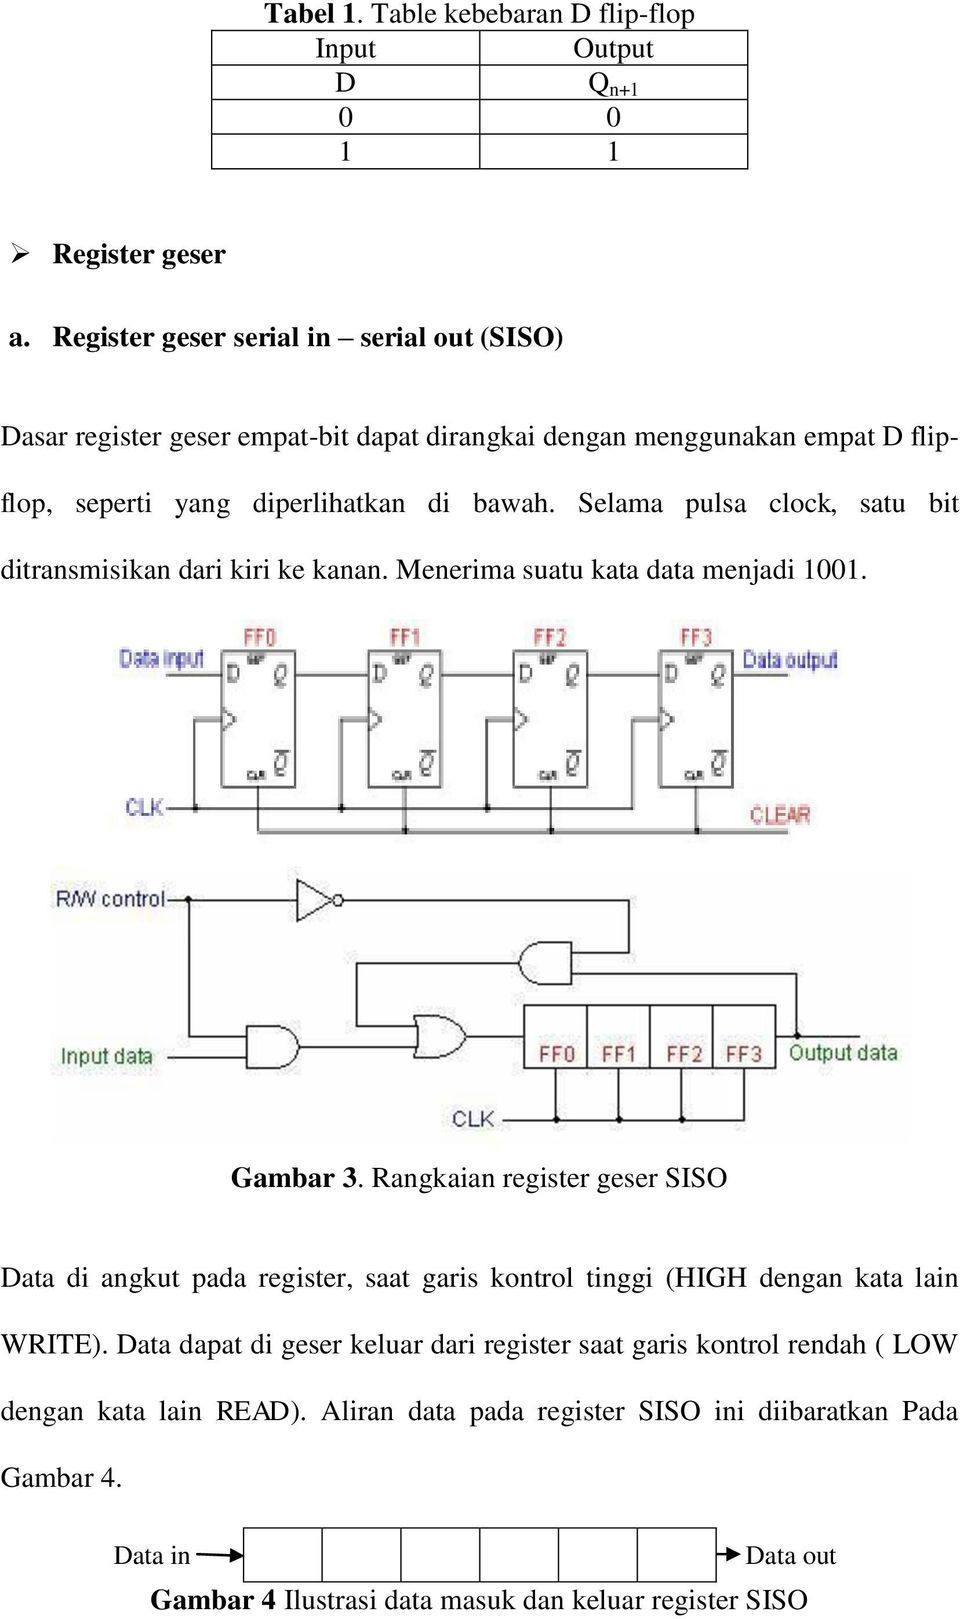 timing diagram register geser serial ke parallel 4 bitregister geser